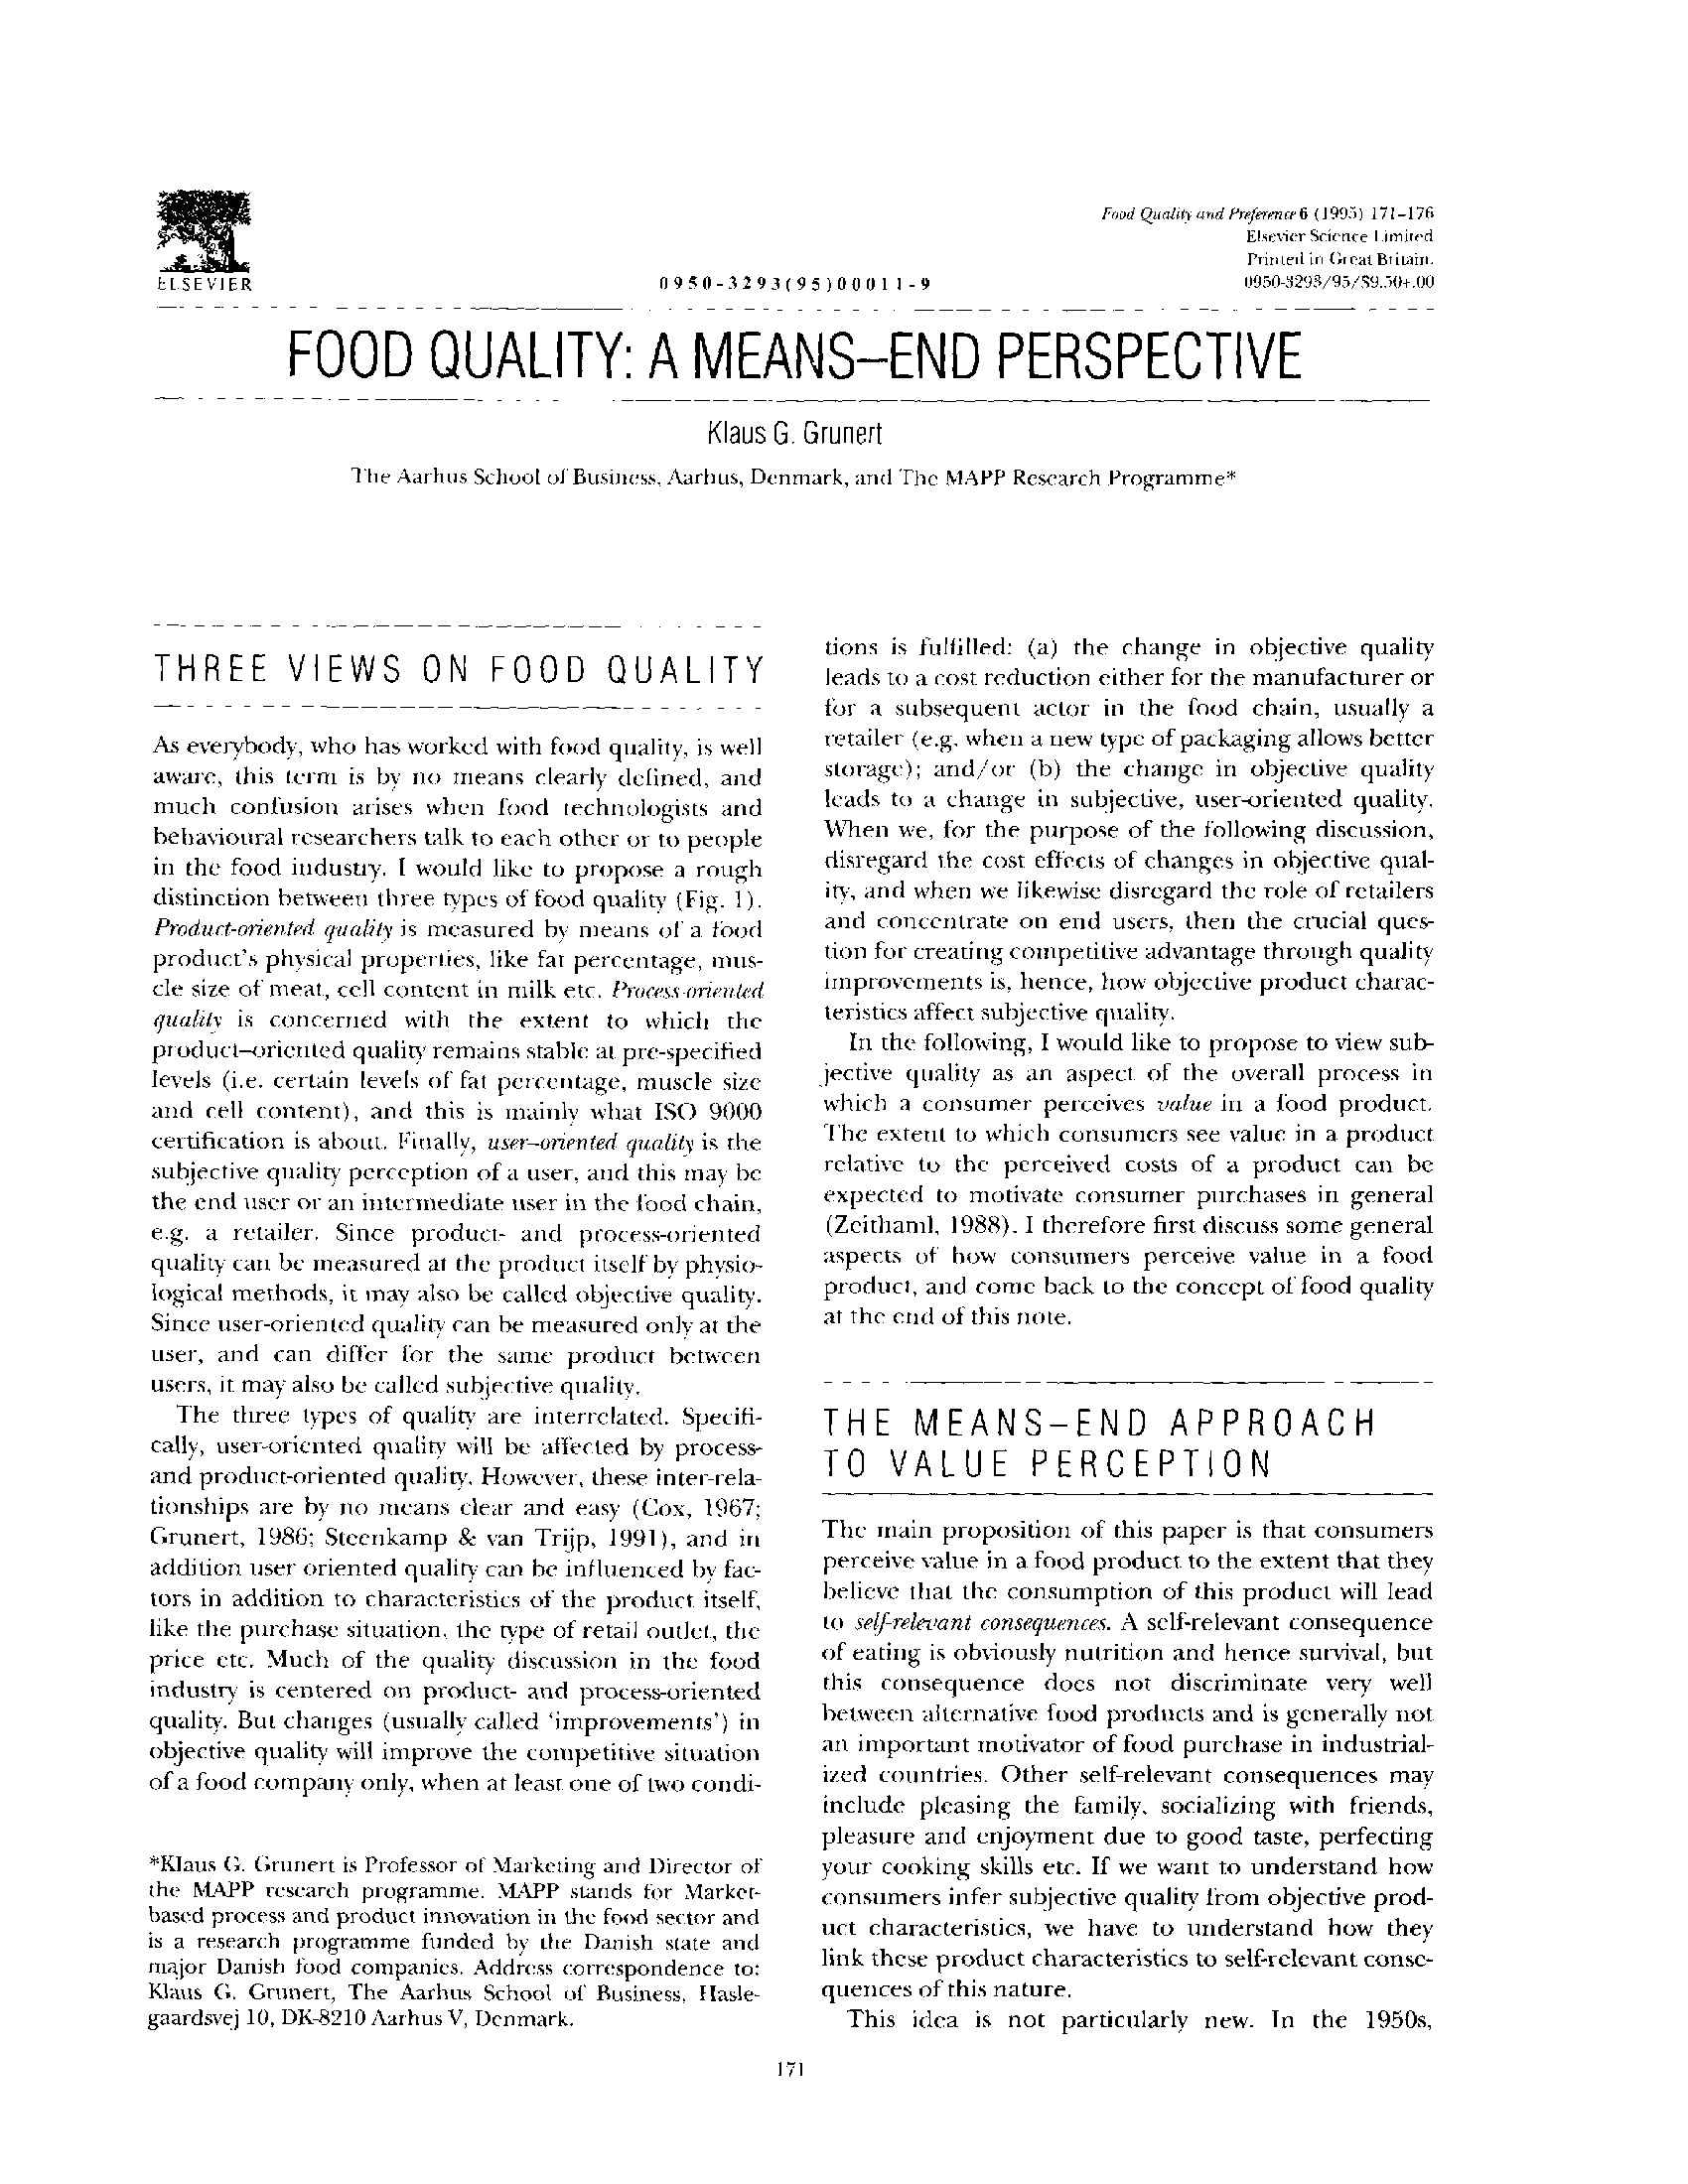 Food Quality - Grunert